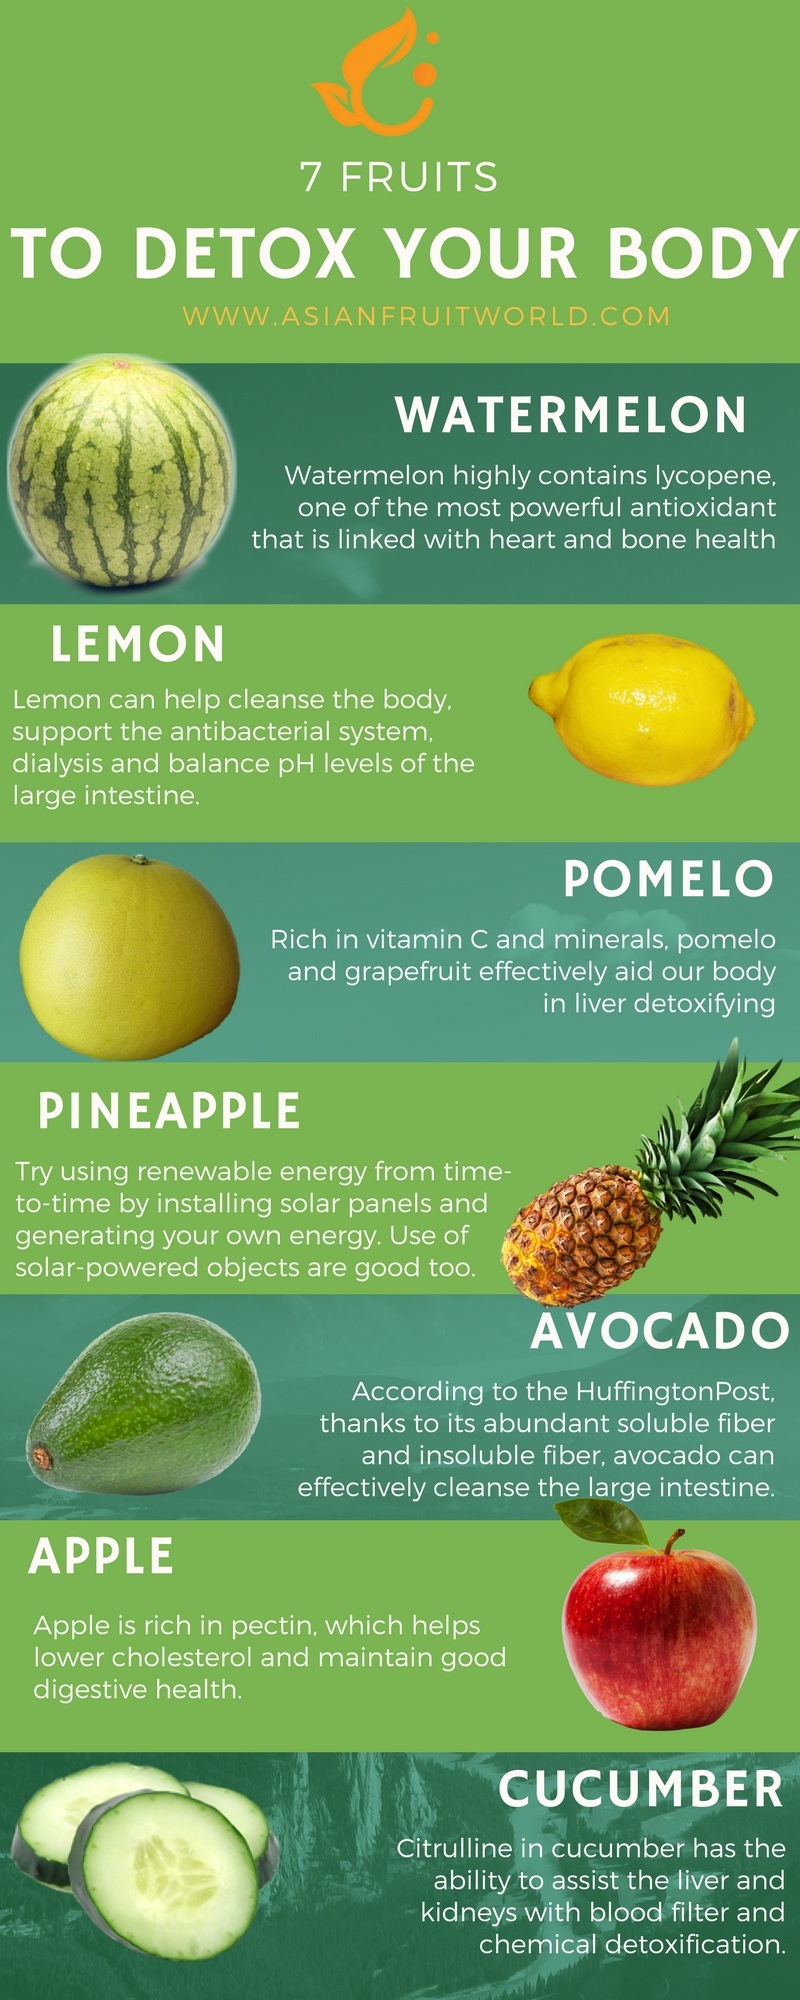 7 fruits that detox our body